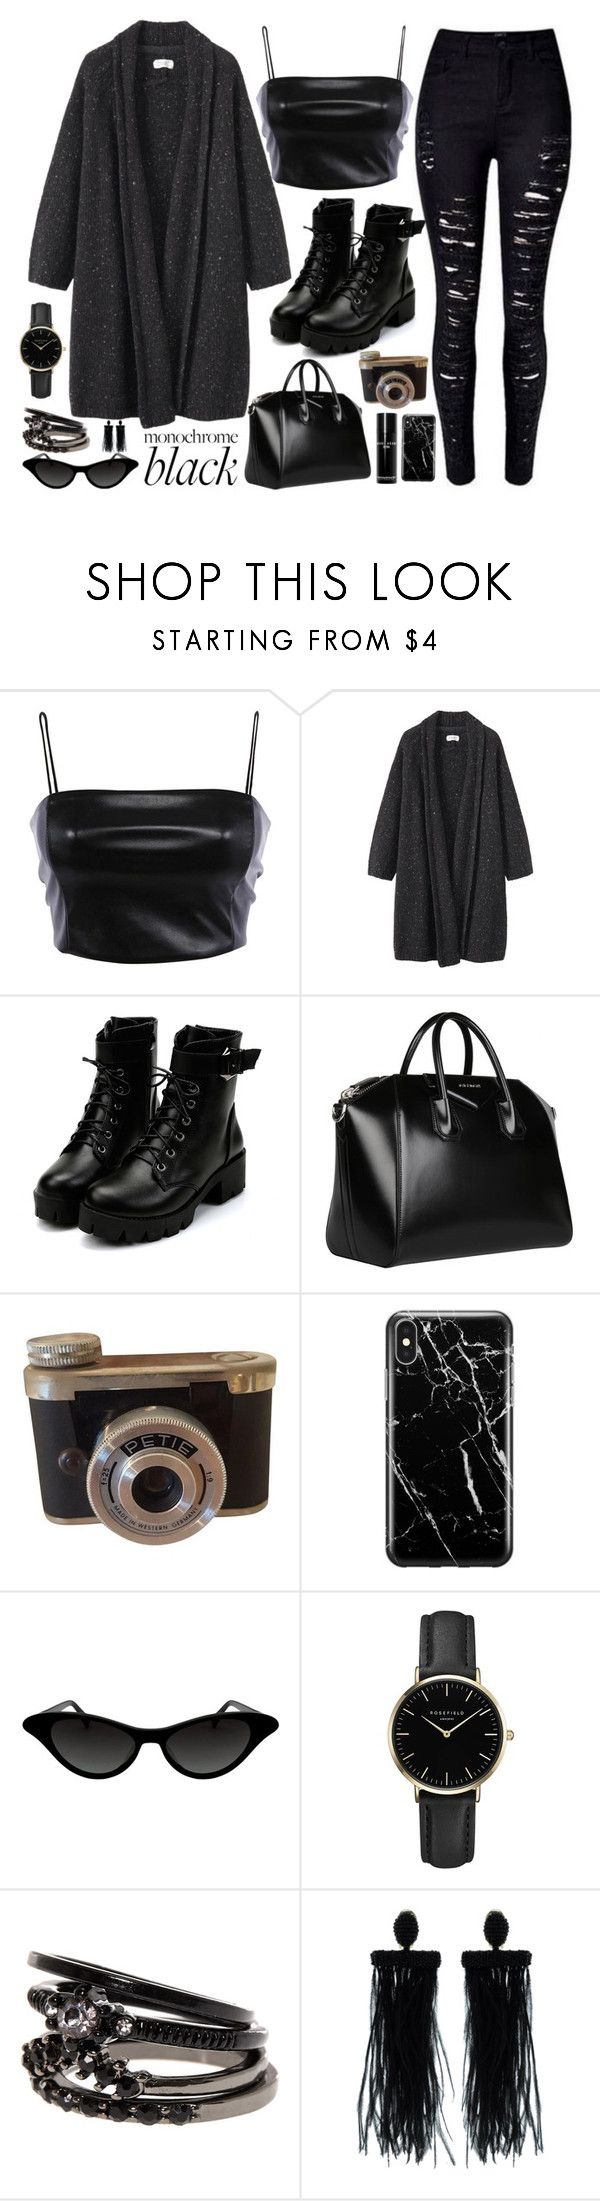 """""""Mission Monochrome: All-Black Outfit"""" by tlb0318 on Polyvore featuring Toast, Givenchy, Recover, ROSEFIELD, Oscar de la Renta and Bobbi Brown Cosmetics"""